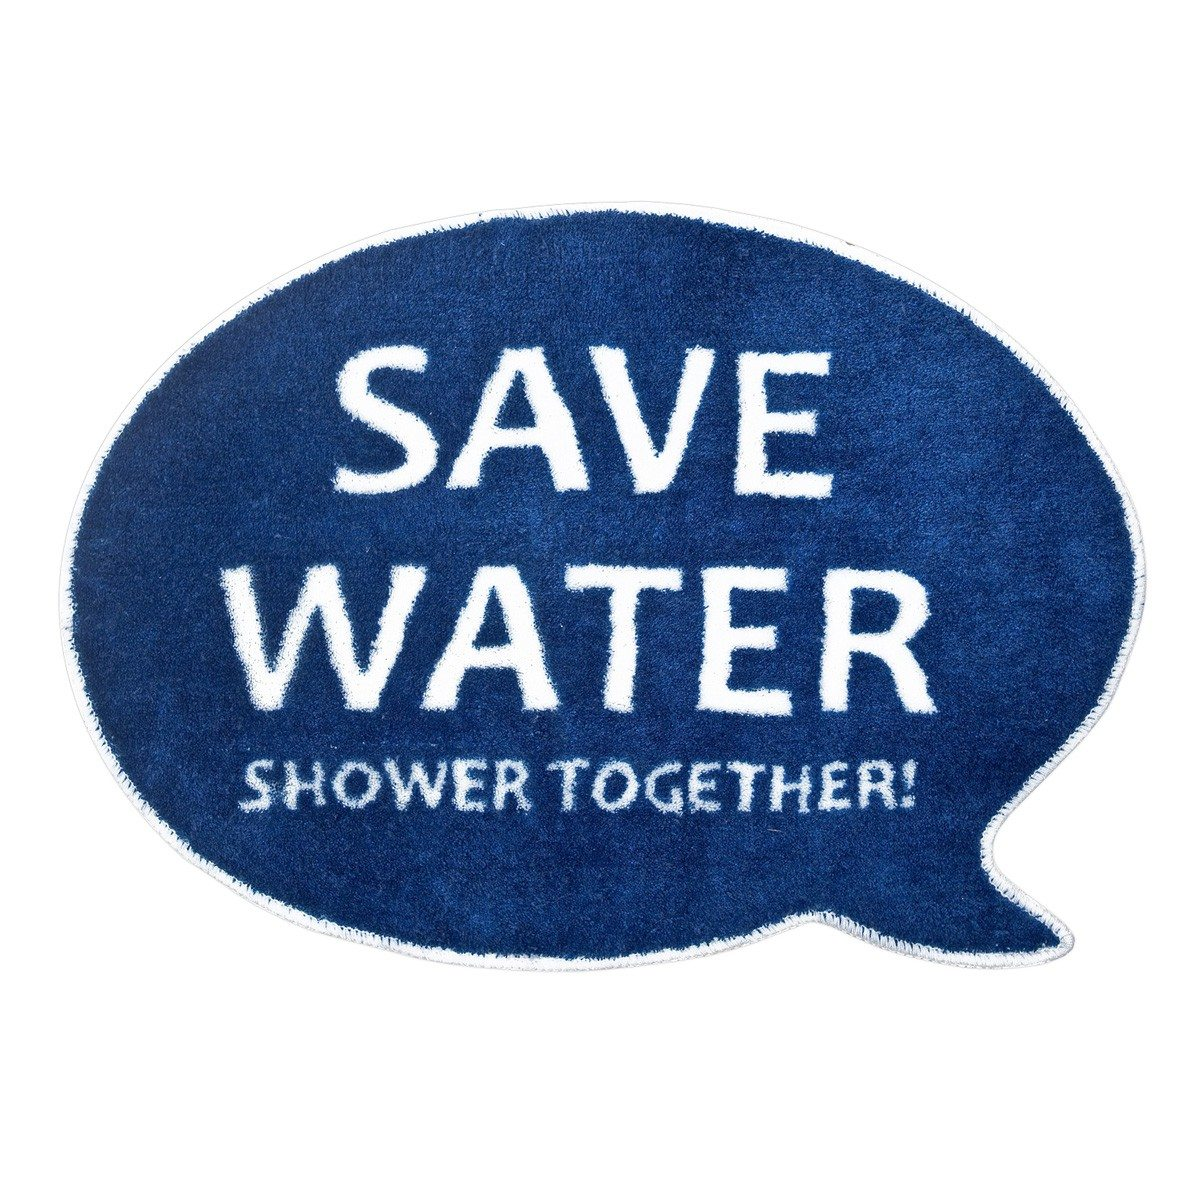 Douchemat: ''Save Water Shower Together!''